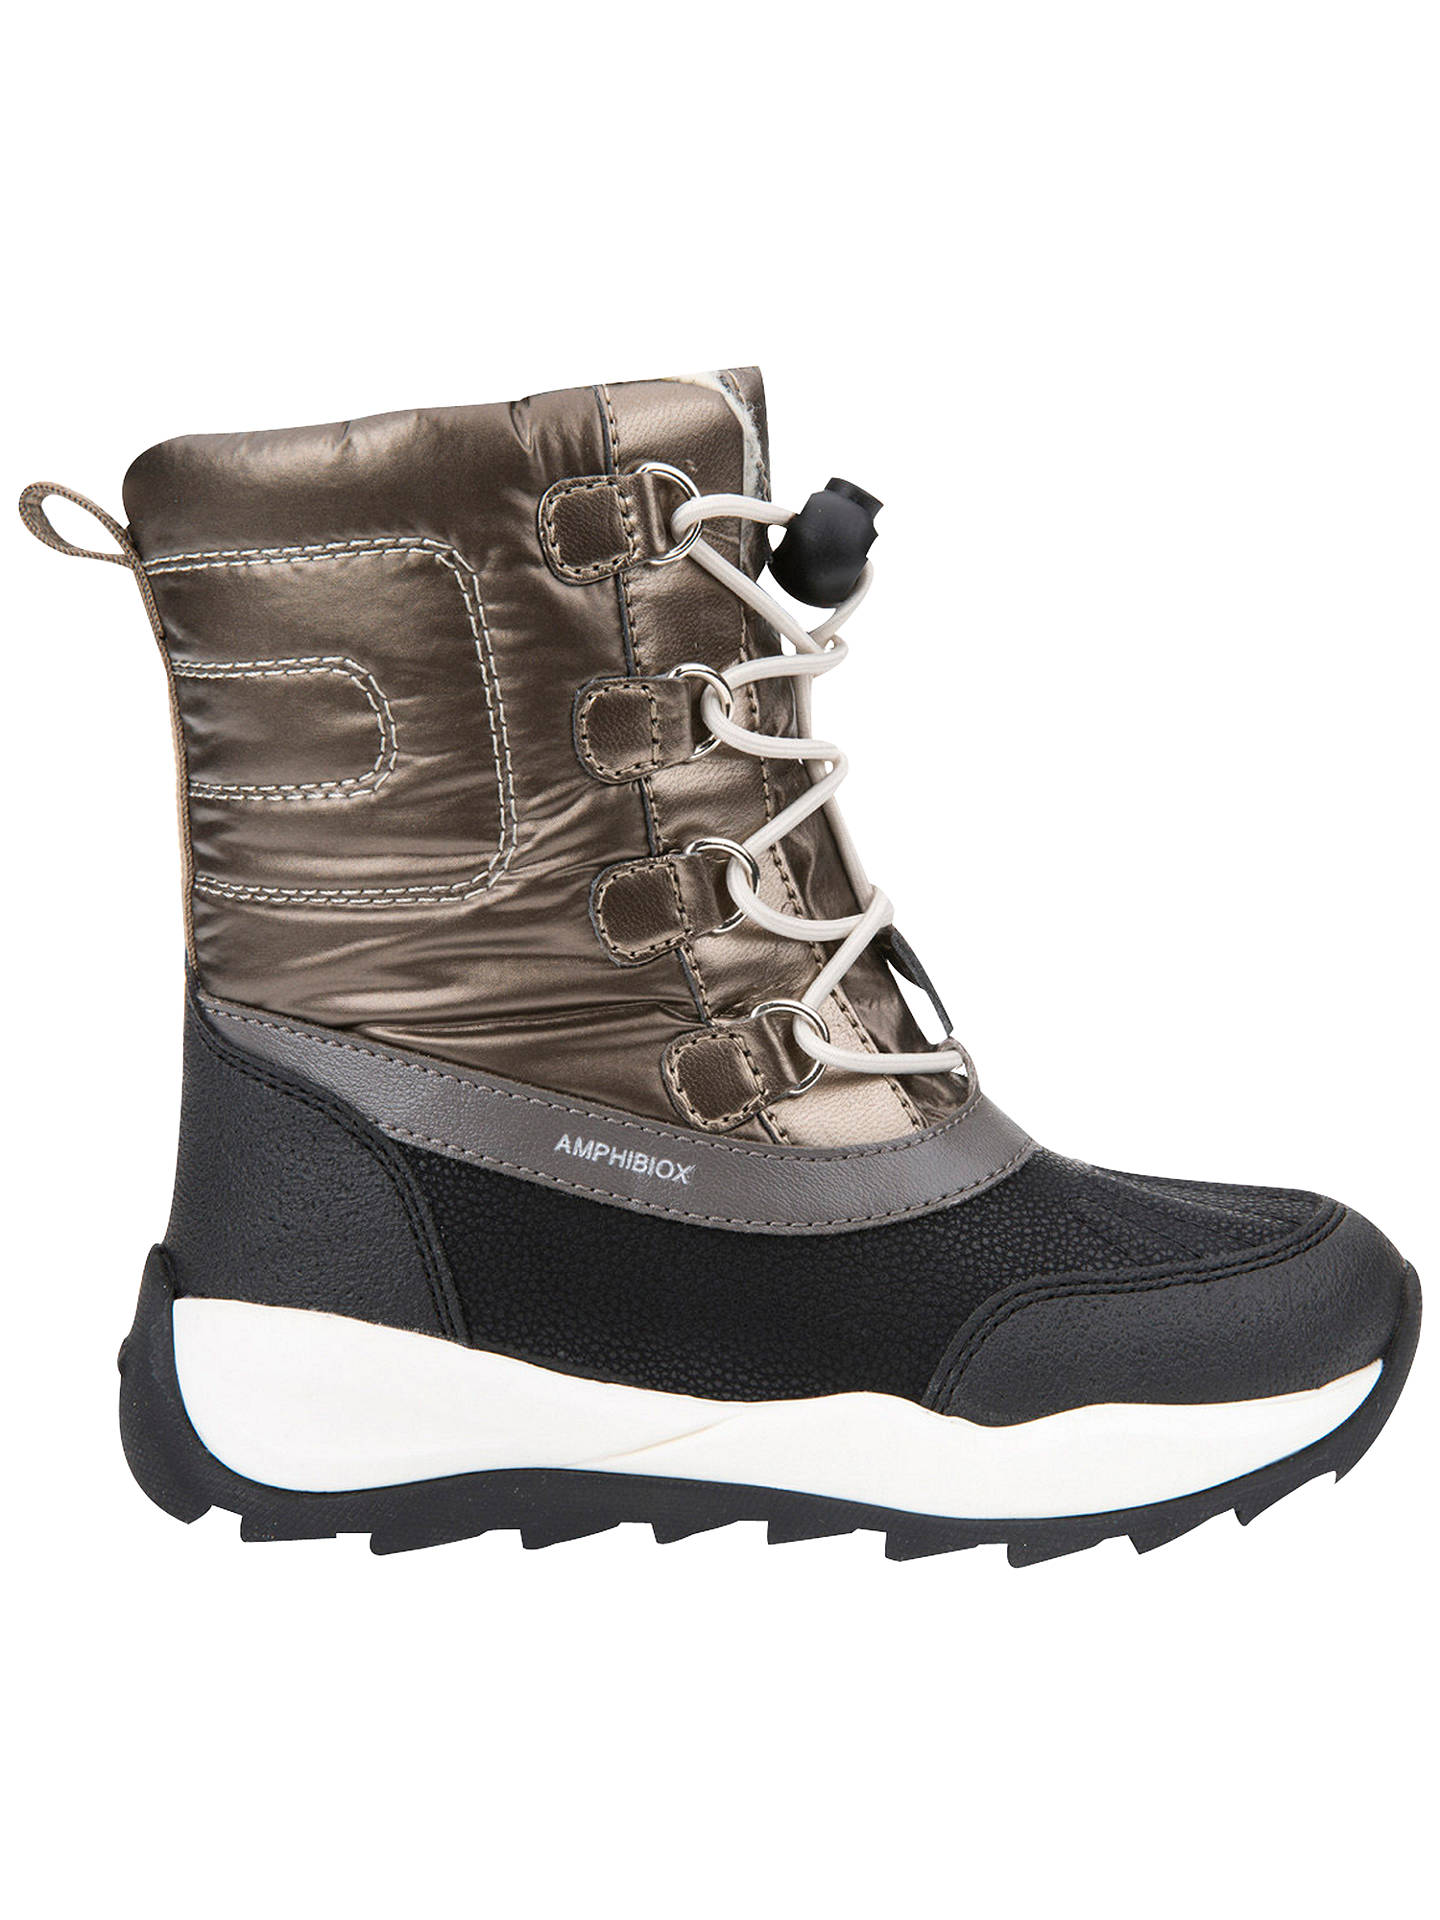 1a8c90ee65 Buy Geox Children s Orizont ABX Lace Boots